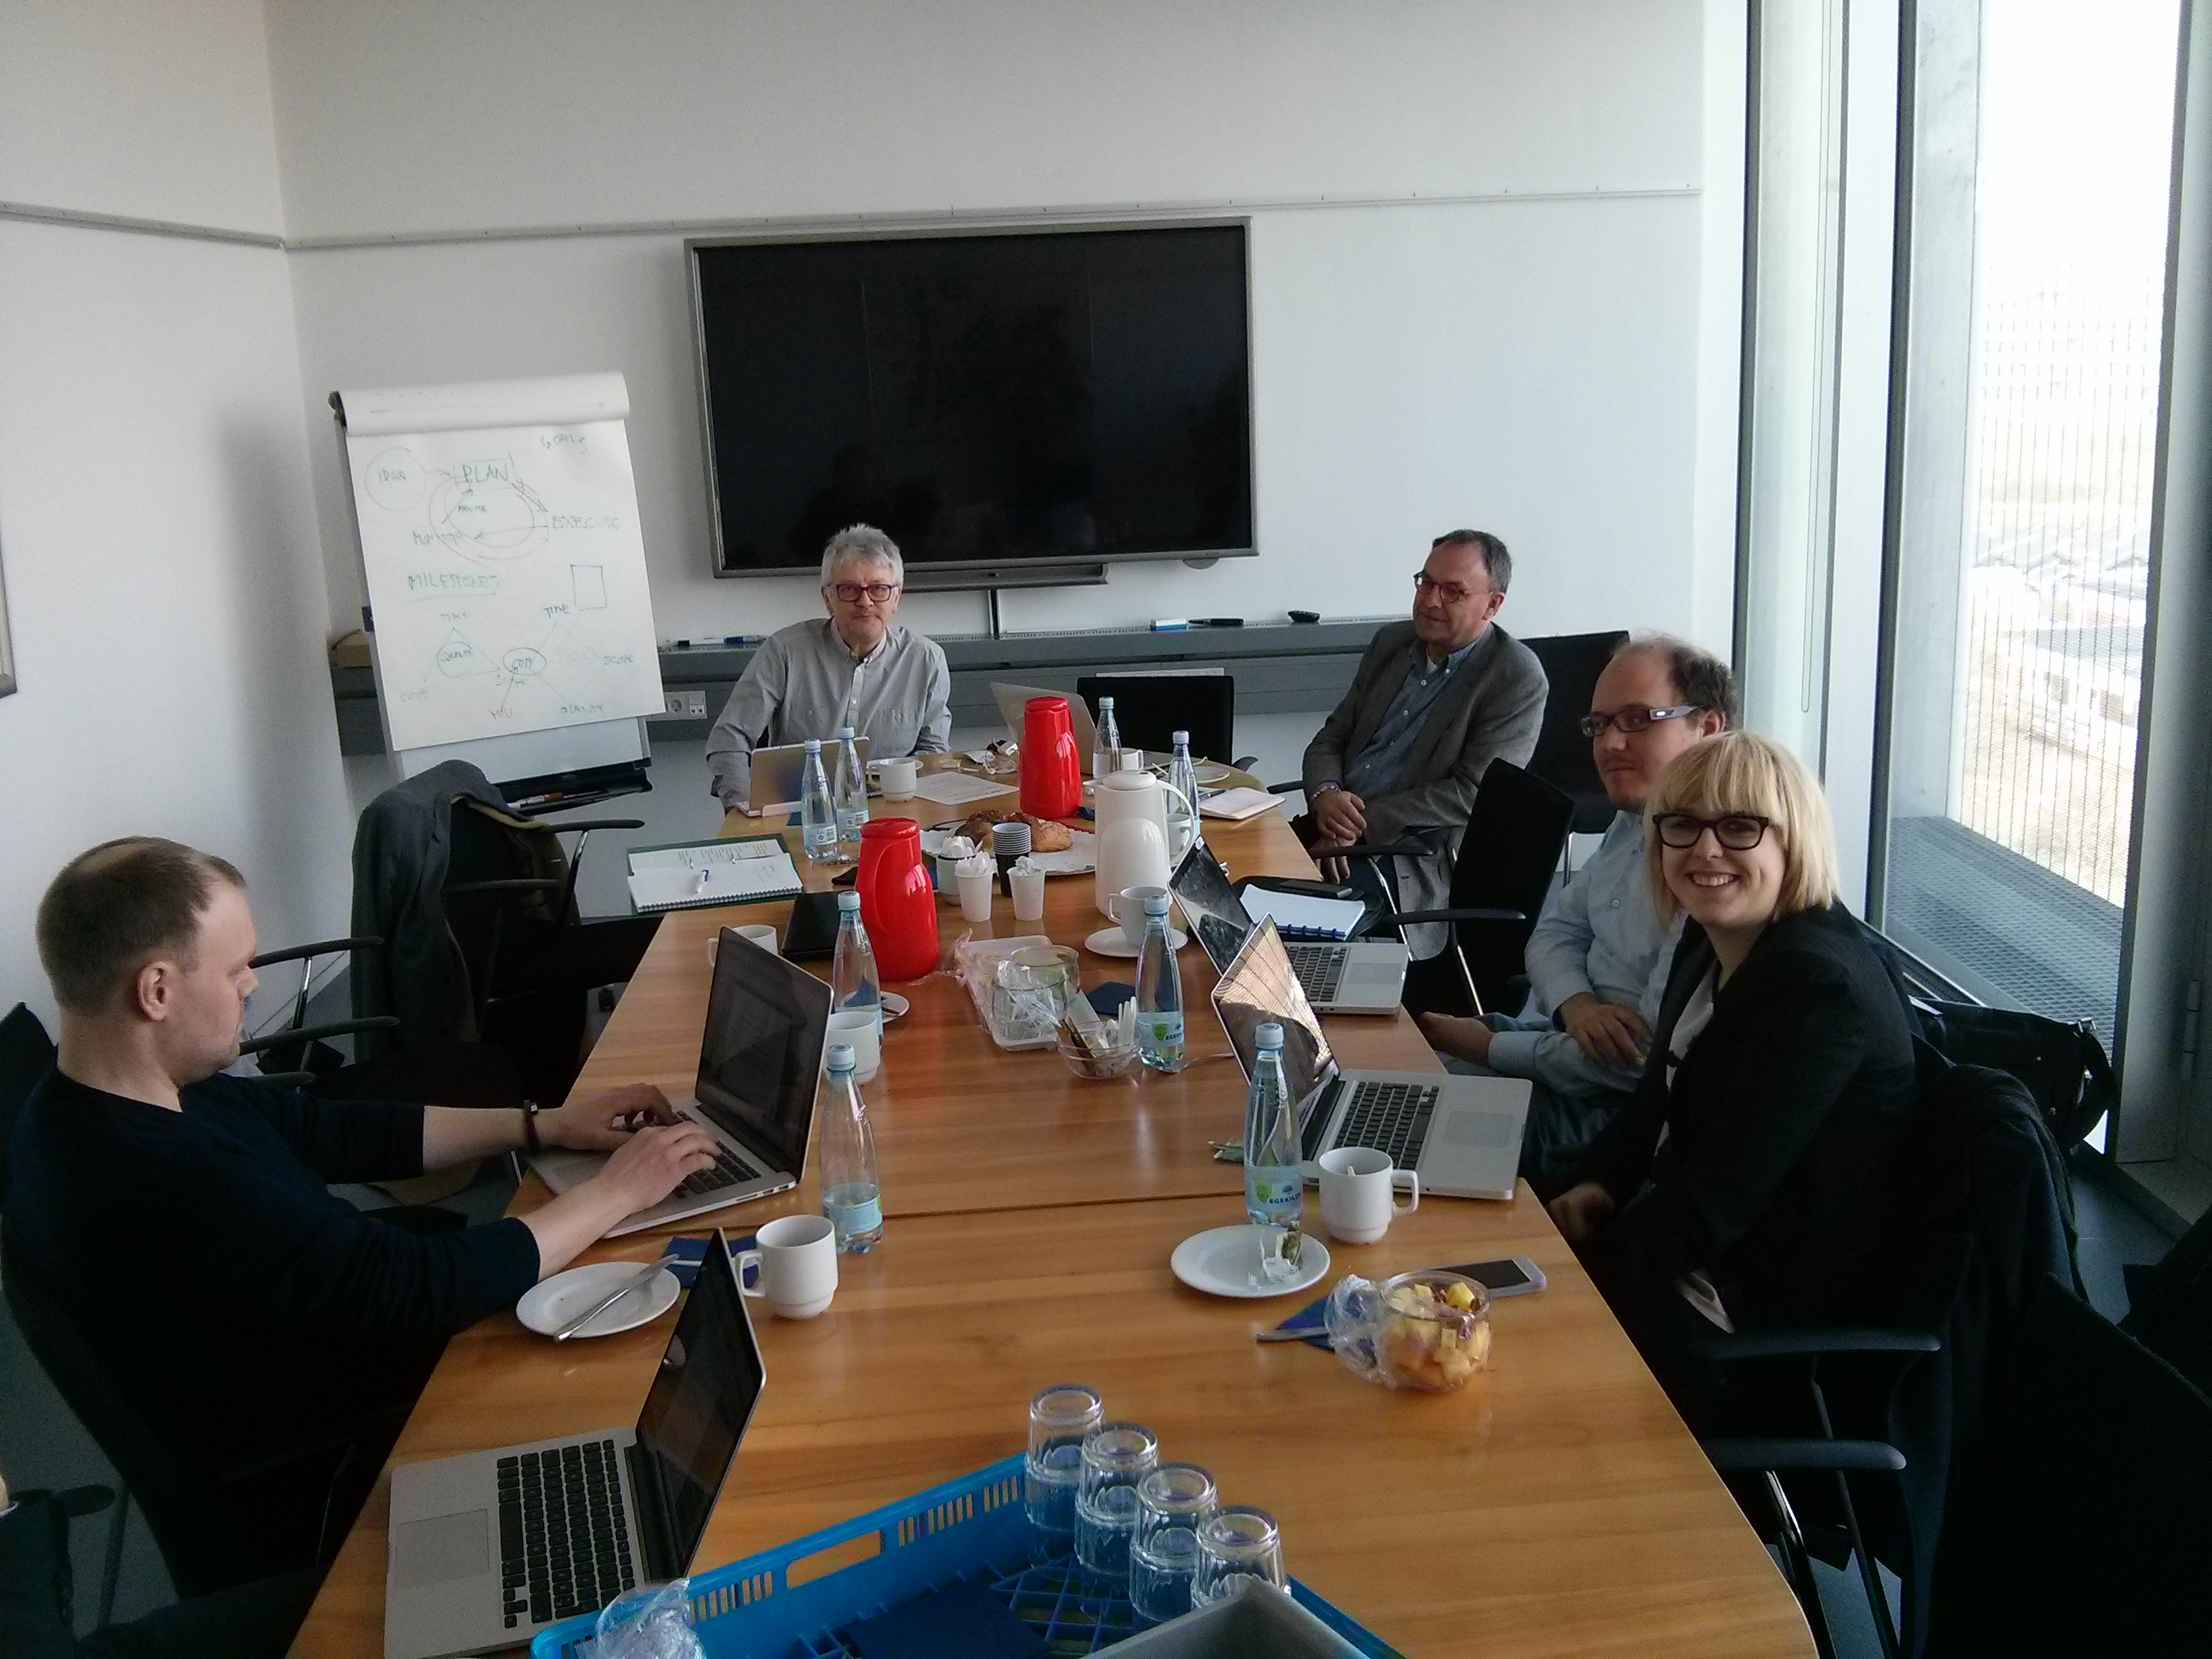 (Photo: MeCETES Team Meeting, University of Copenhagen, March 14, 2014)